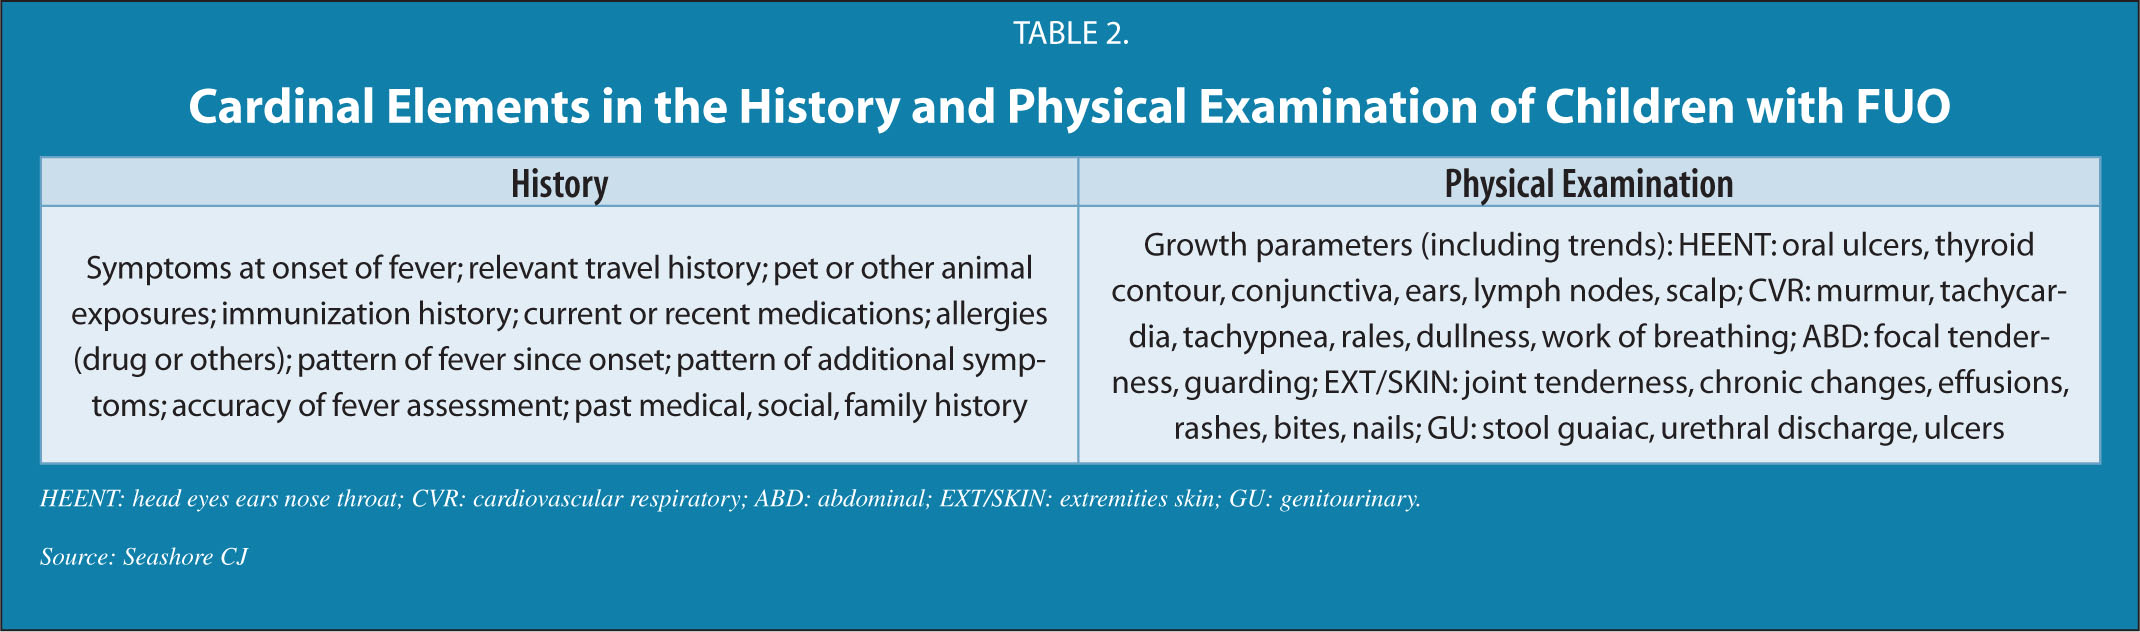 Cardinal Elements in the History and Physical Examination of Children with FUO